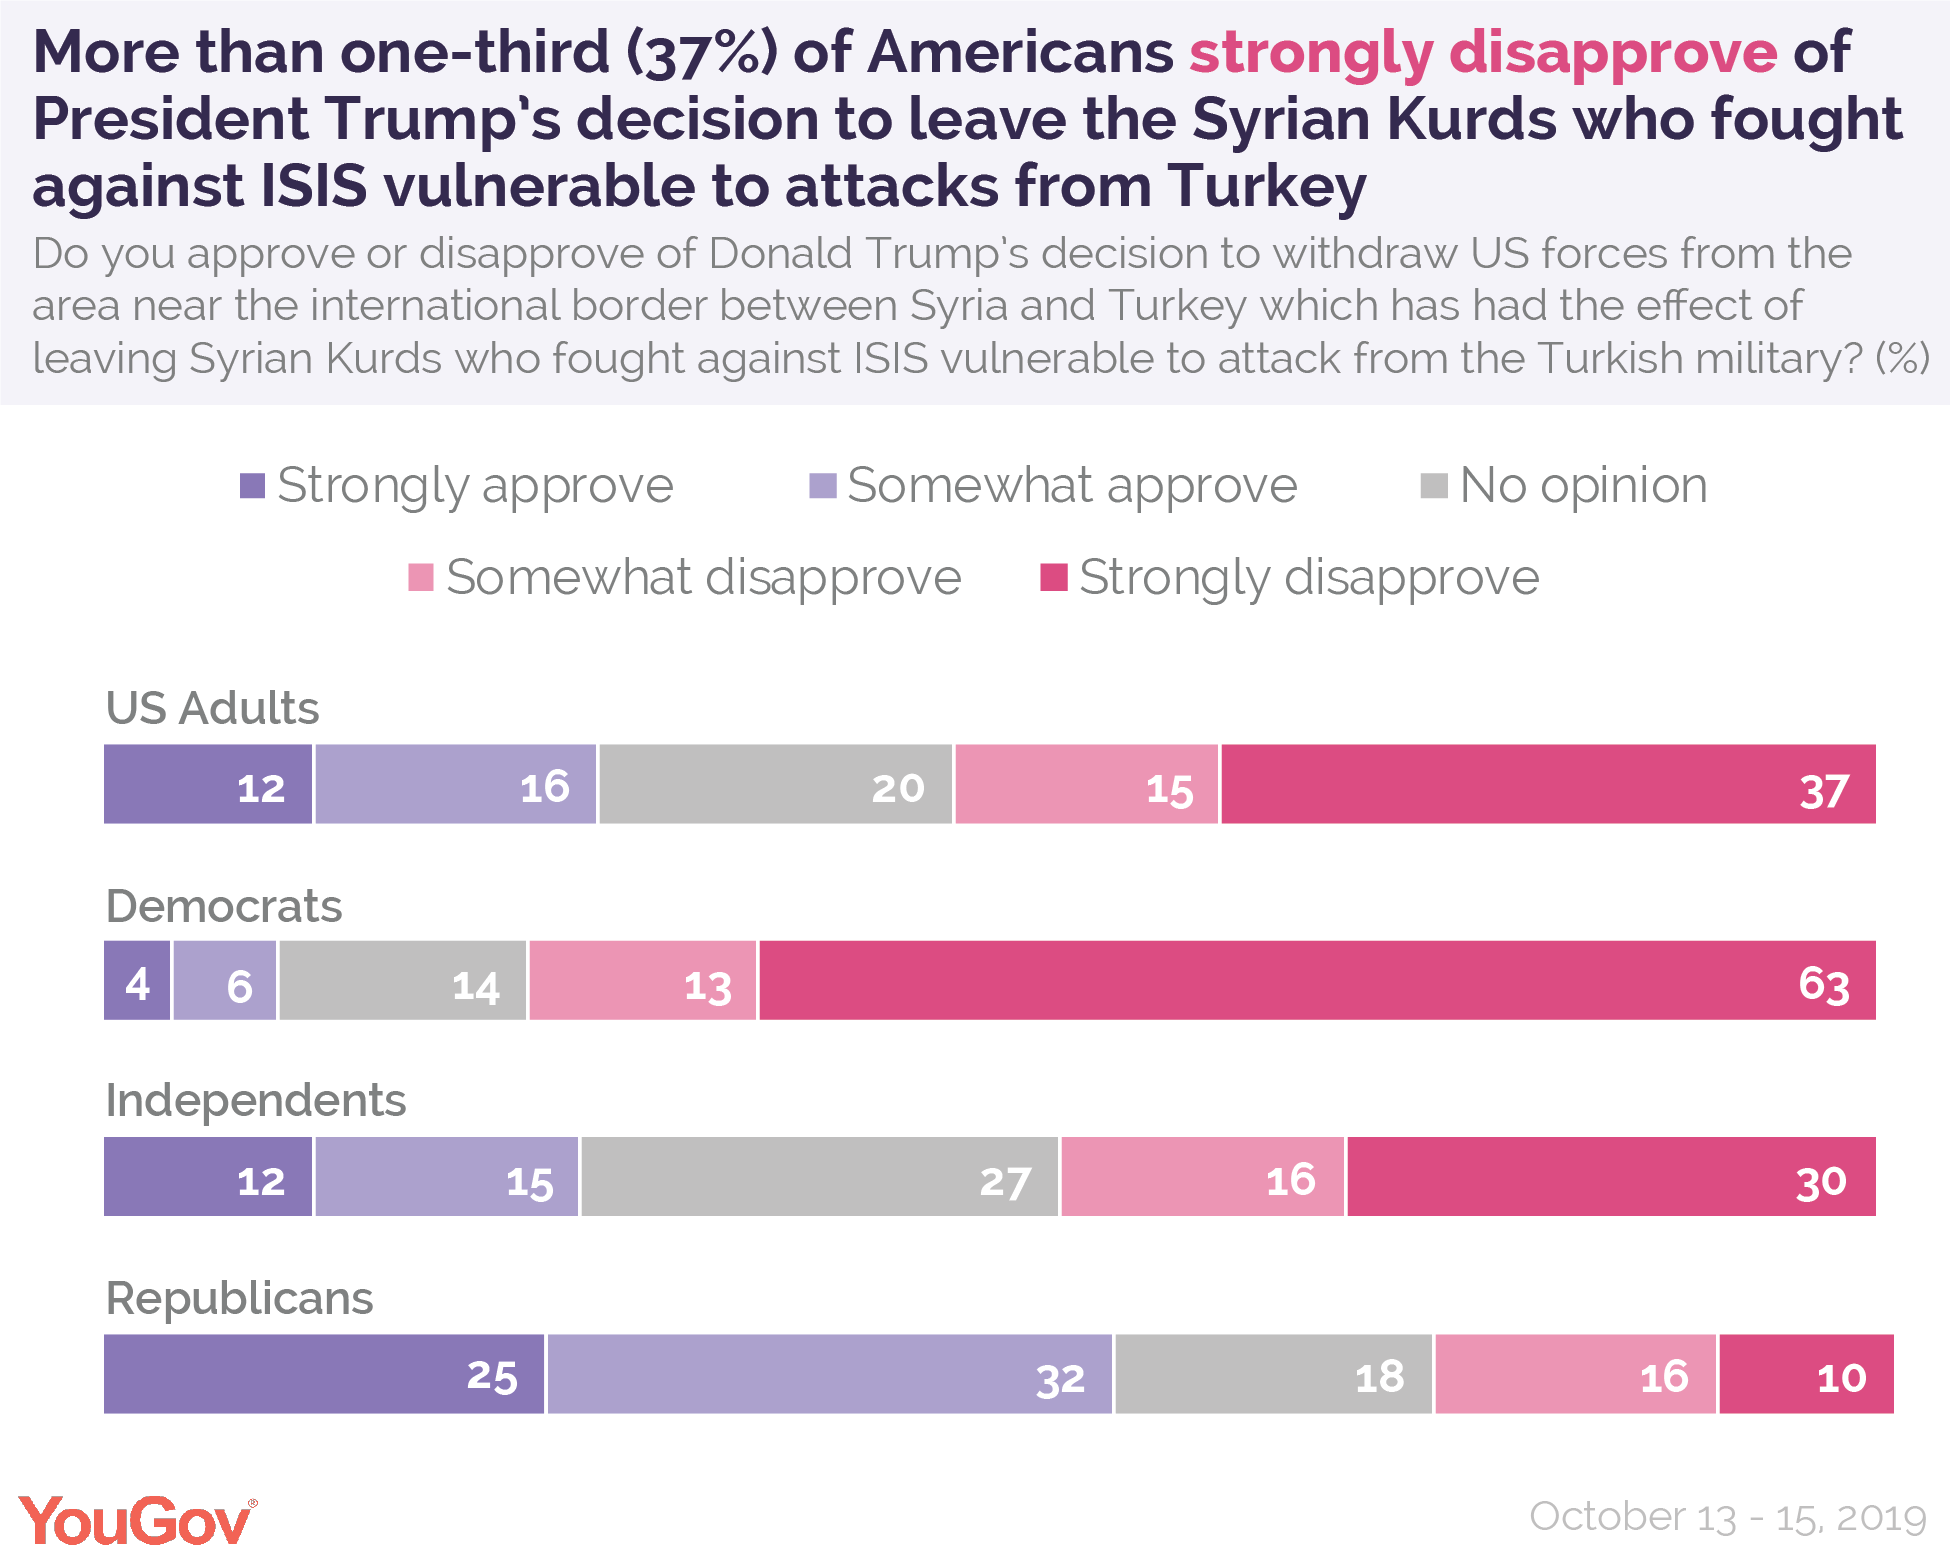 More than one-third of Americans strongly disapprove of President Donald Trump's decision to leave the Syrian Kurds who fought against ISIS vulnerable to attacks from Turkey